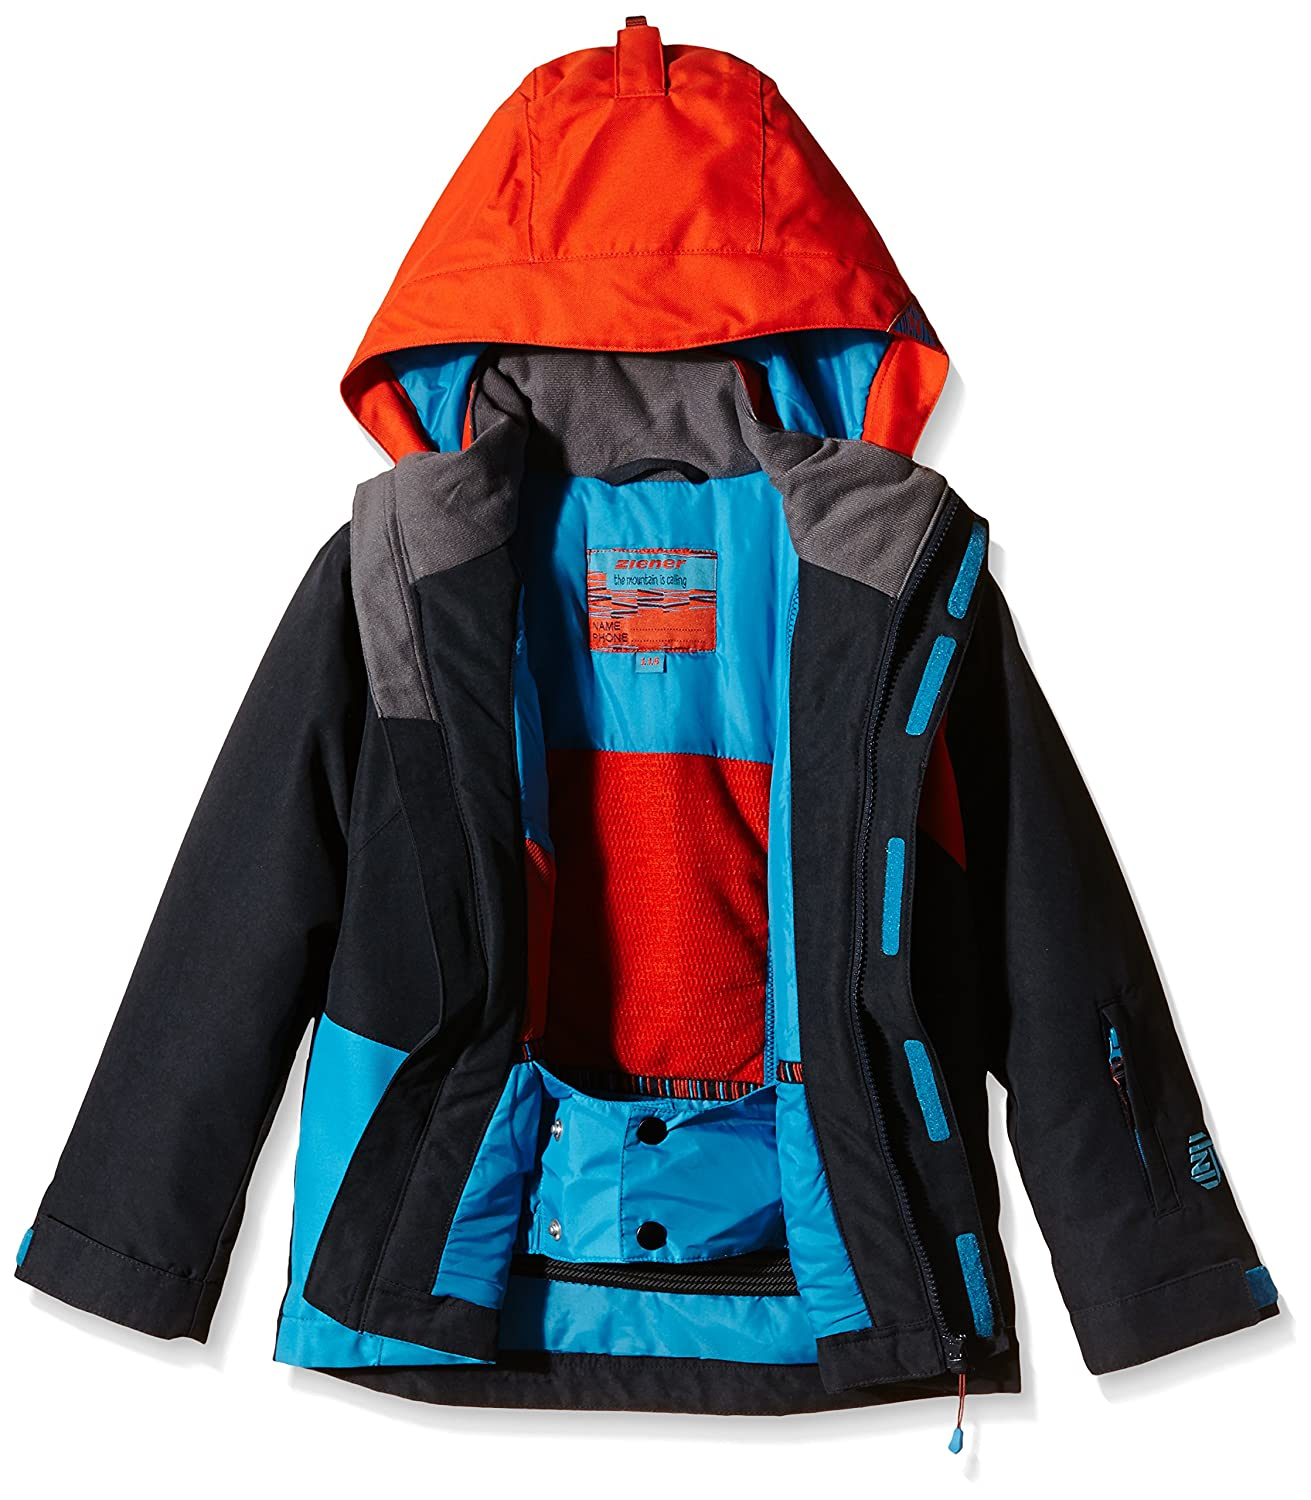 Ziener Kinder Jacke Almin Jun, Mehrfarbig (Dark Shadow Splash), 140,  157906  Amazon.de  Sport   Freizeit 55c96748a6